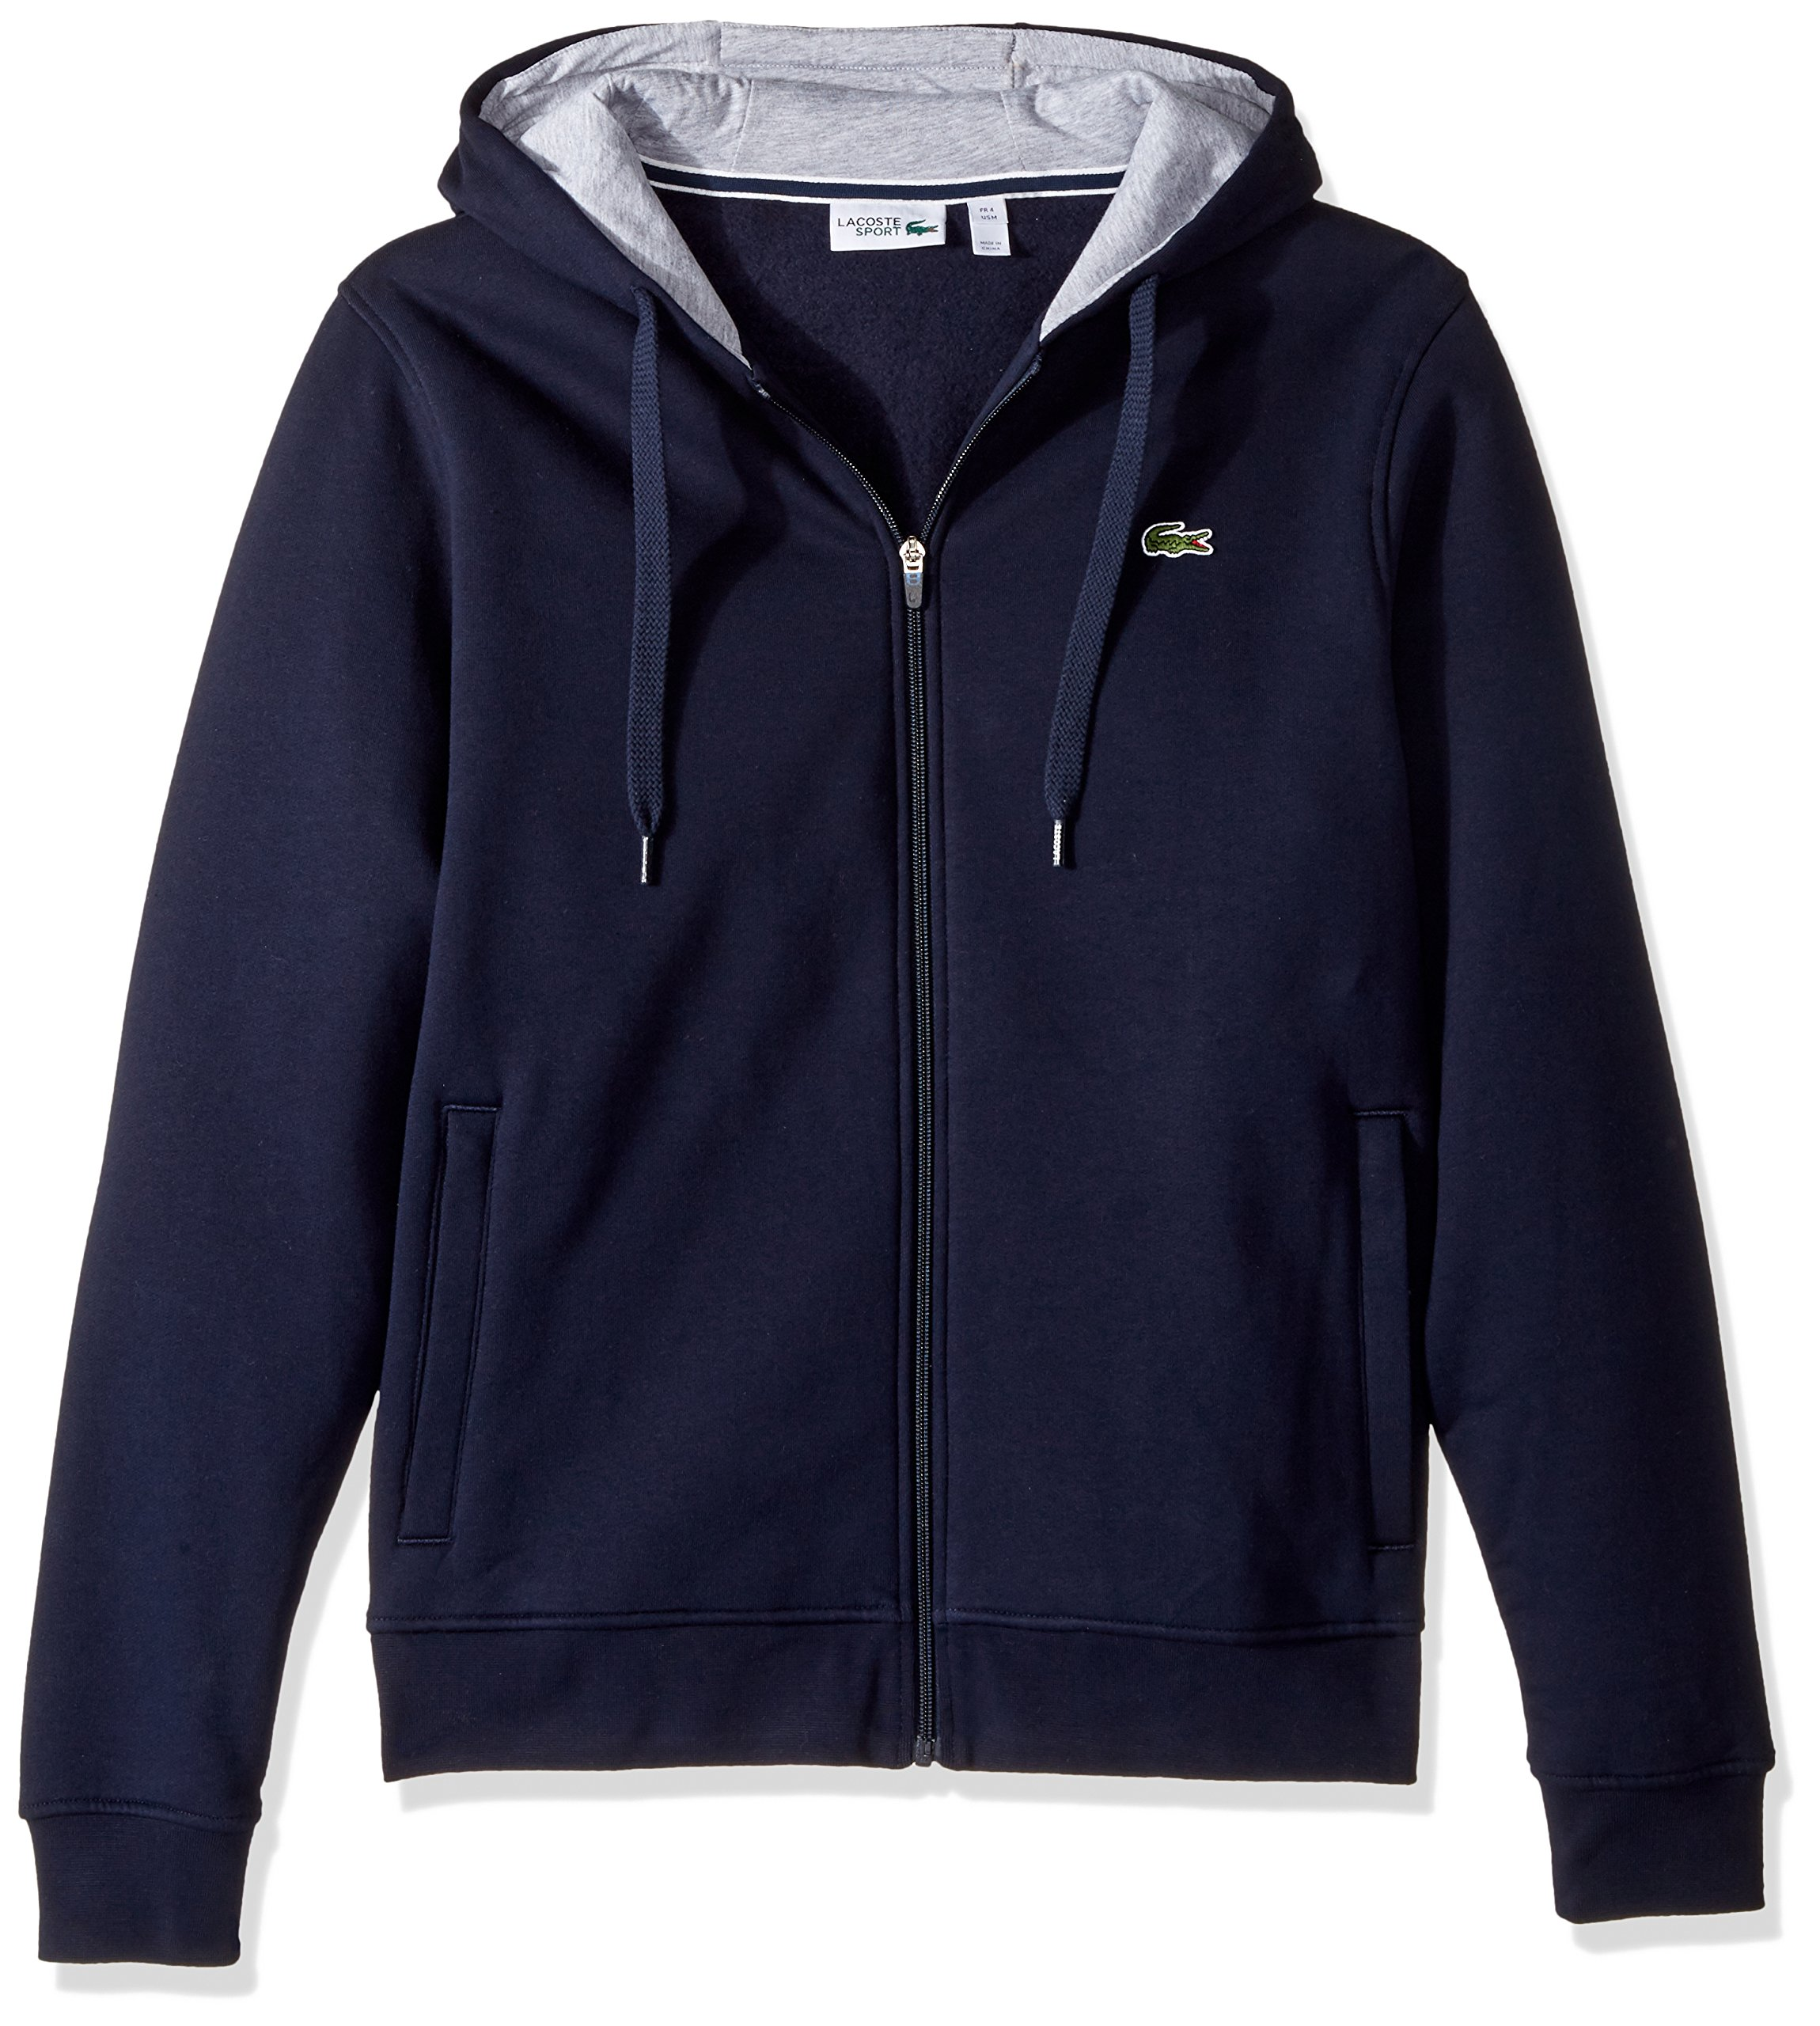 Lacoste Men's Full Zip Hoodie Fleece Sweatshirt, Navy Blue/Silver Chine, Medium